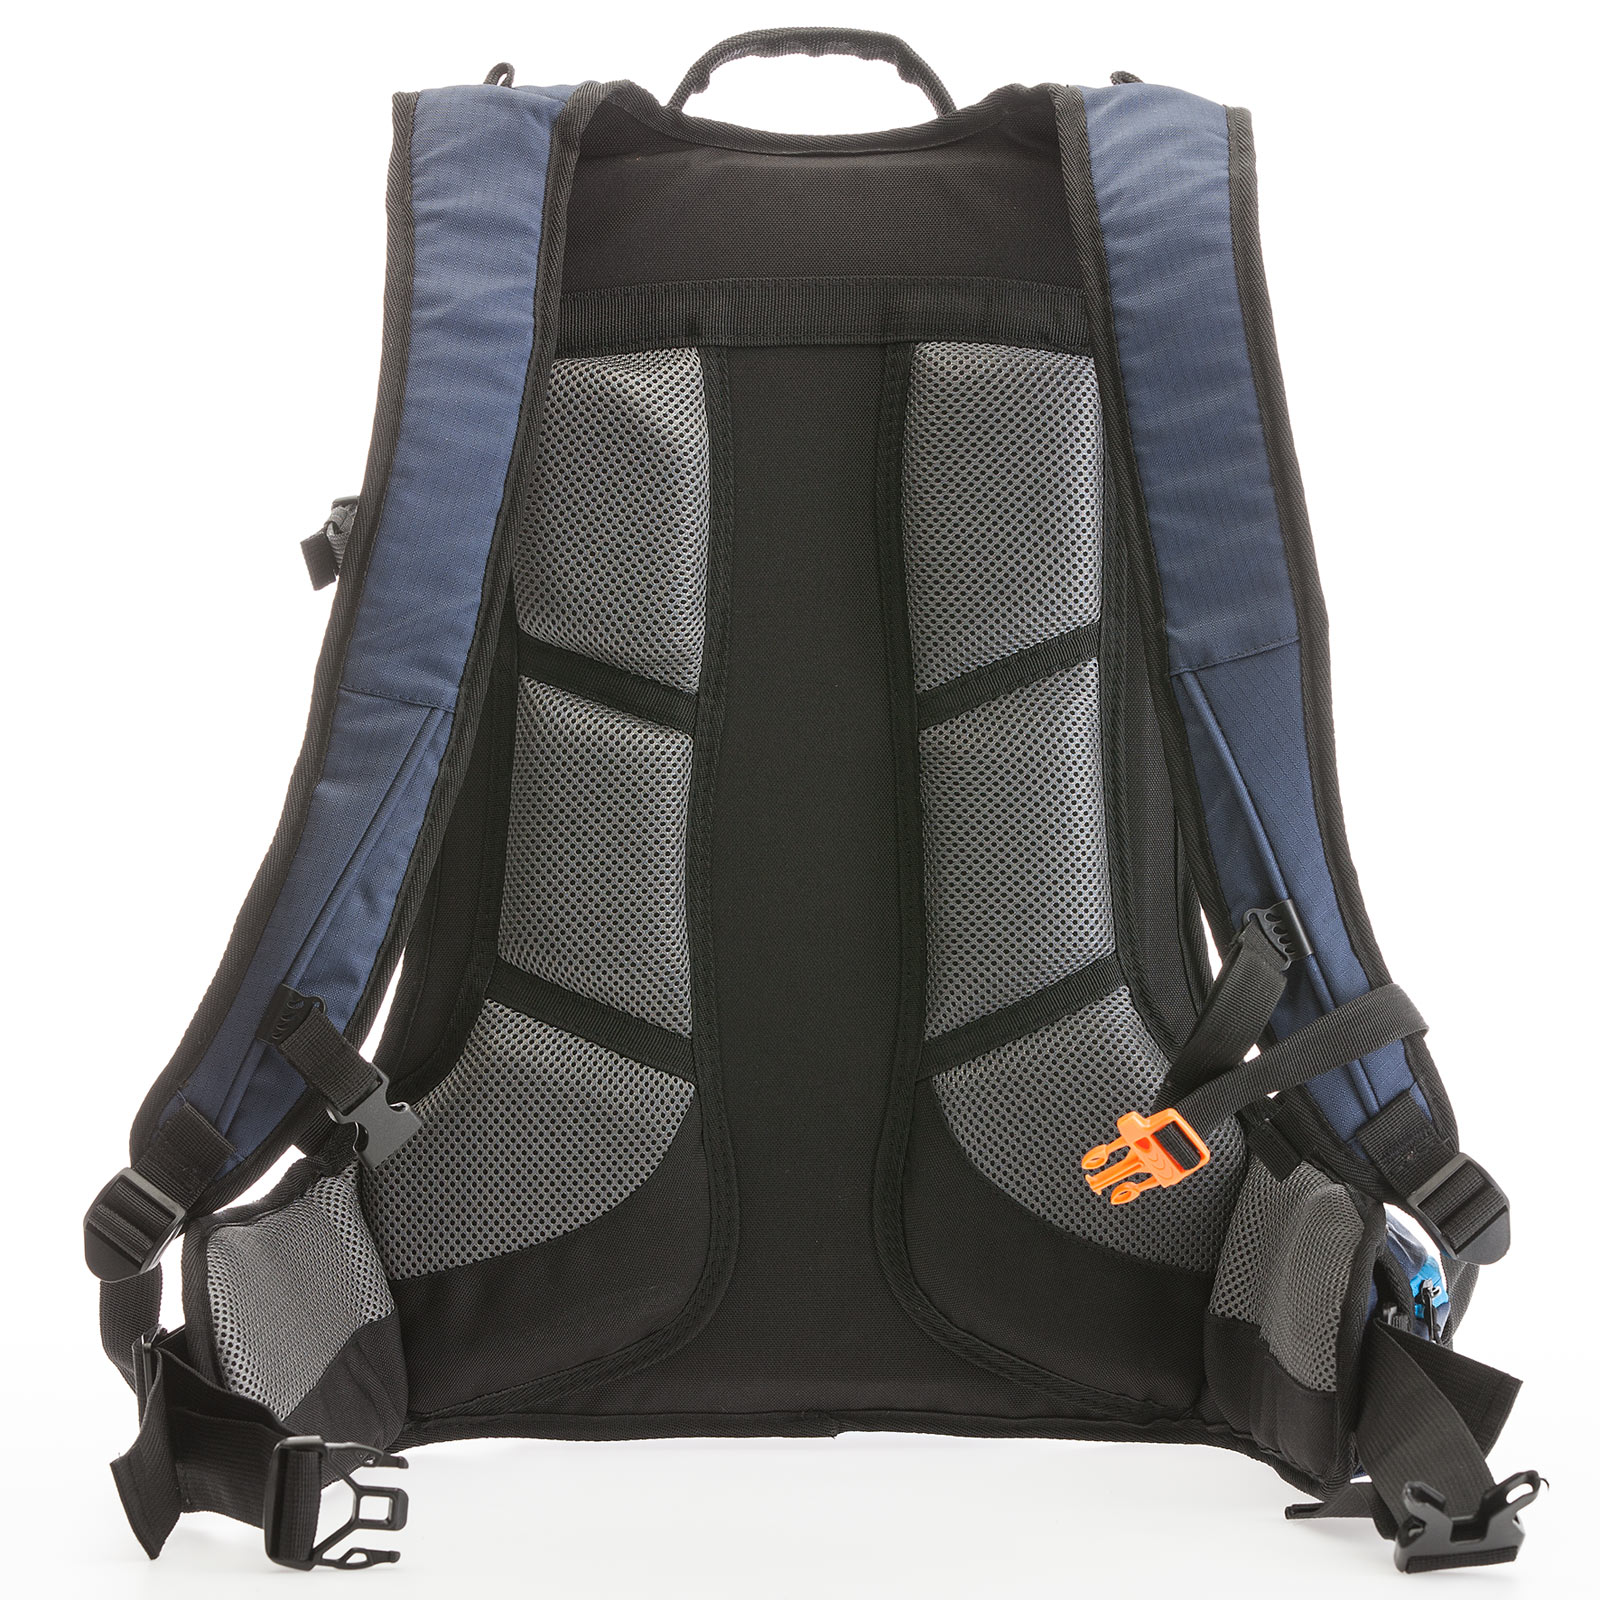 skandika whistler sac a dos daypack marche rando trekking 32l bleu neuf ebay. Black Bedroom Furniture Sets. Home Design Ideas